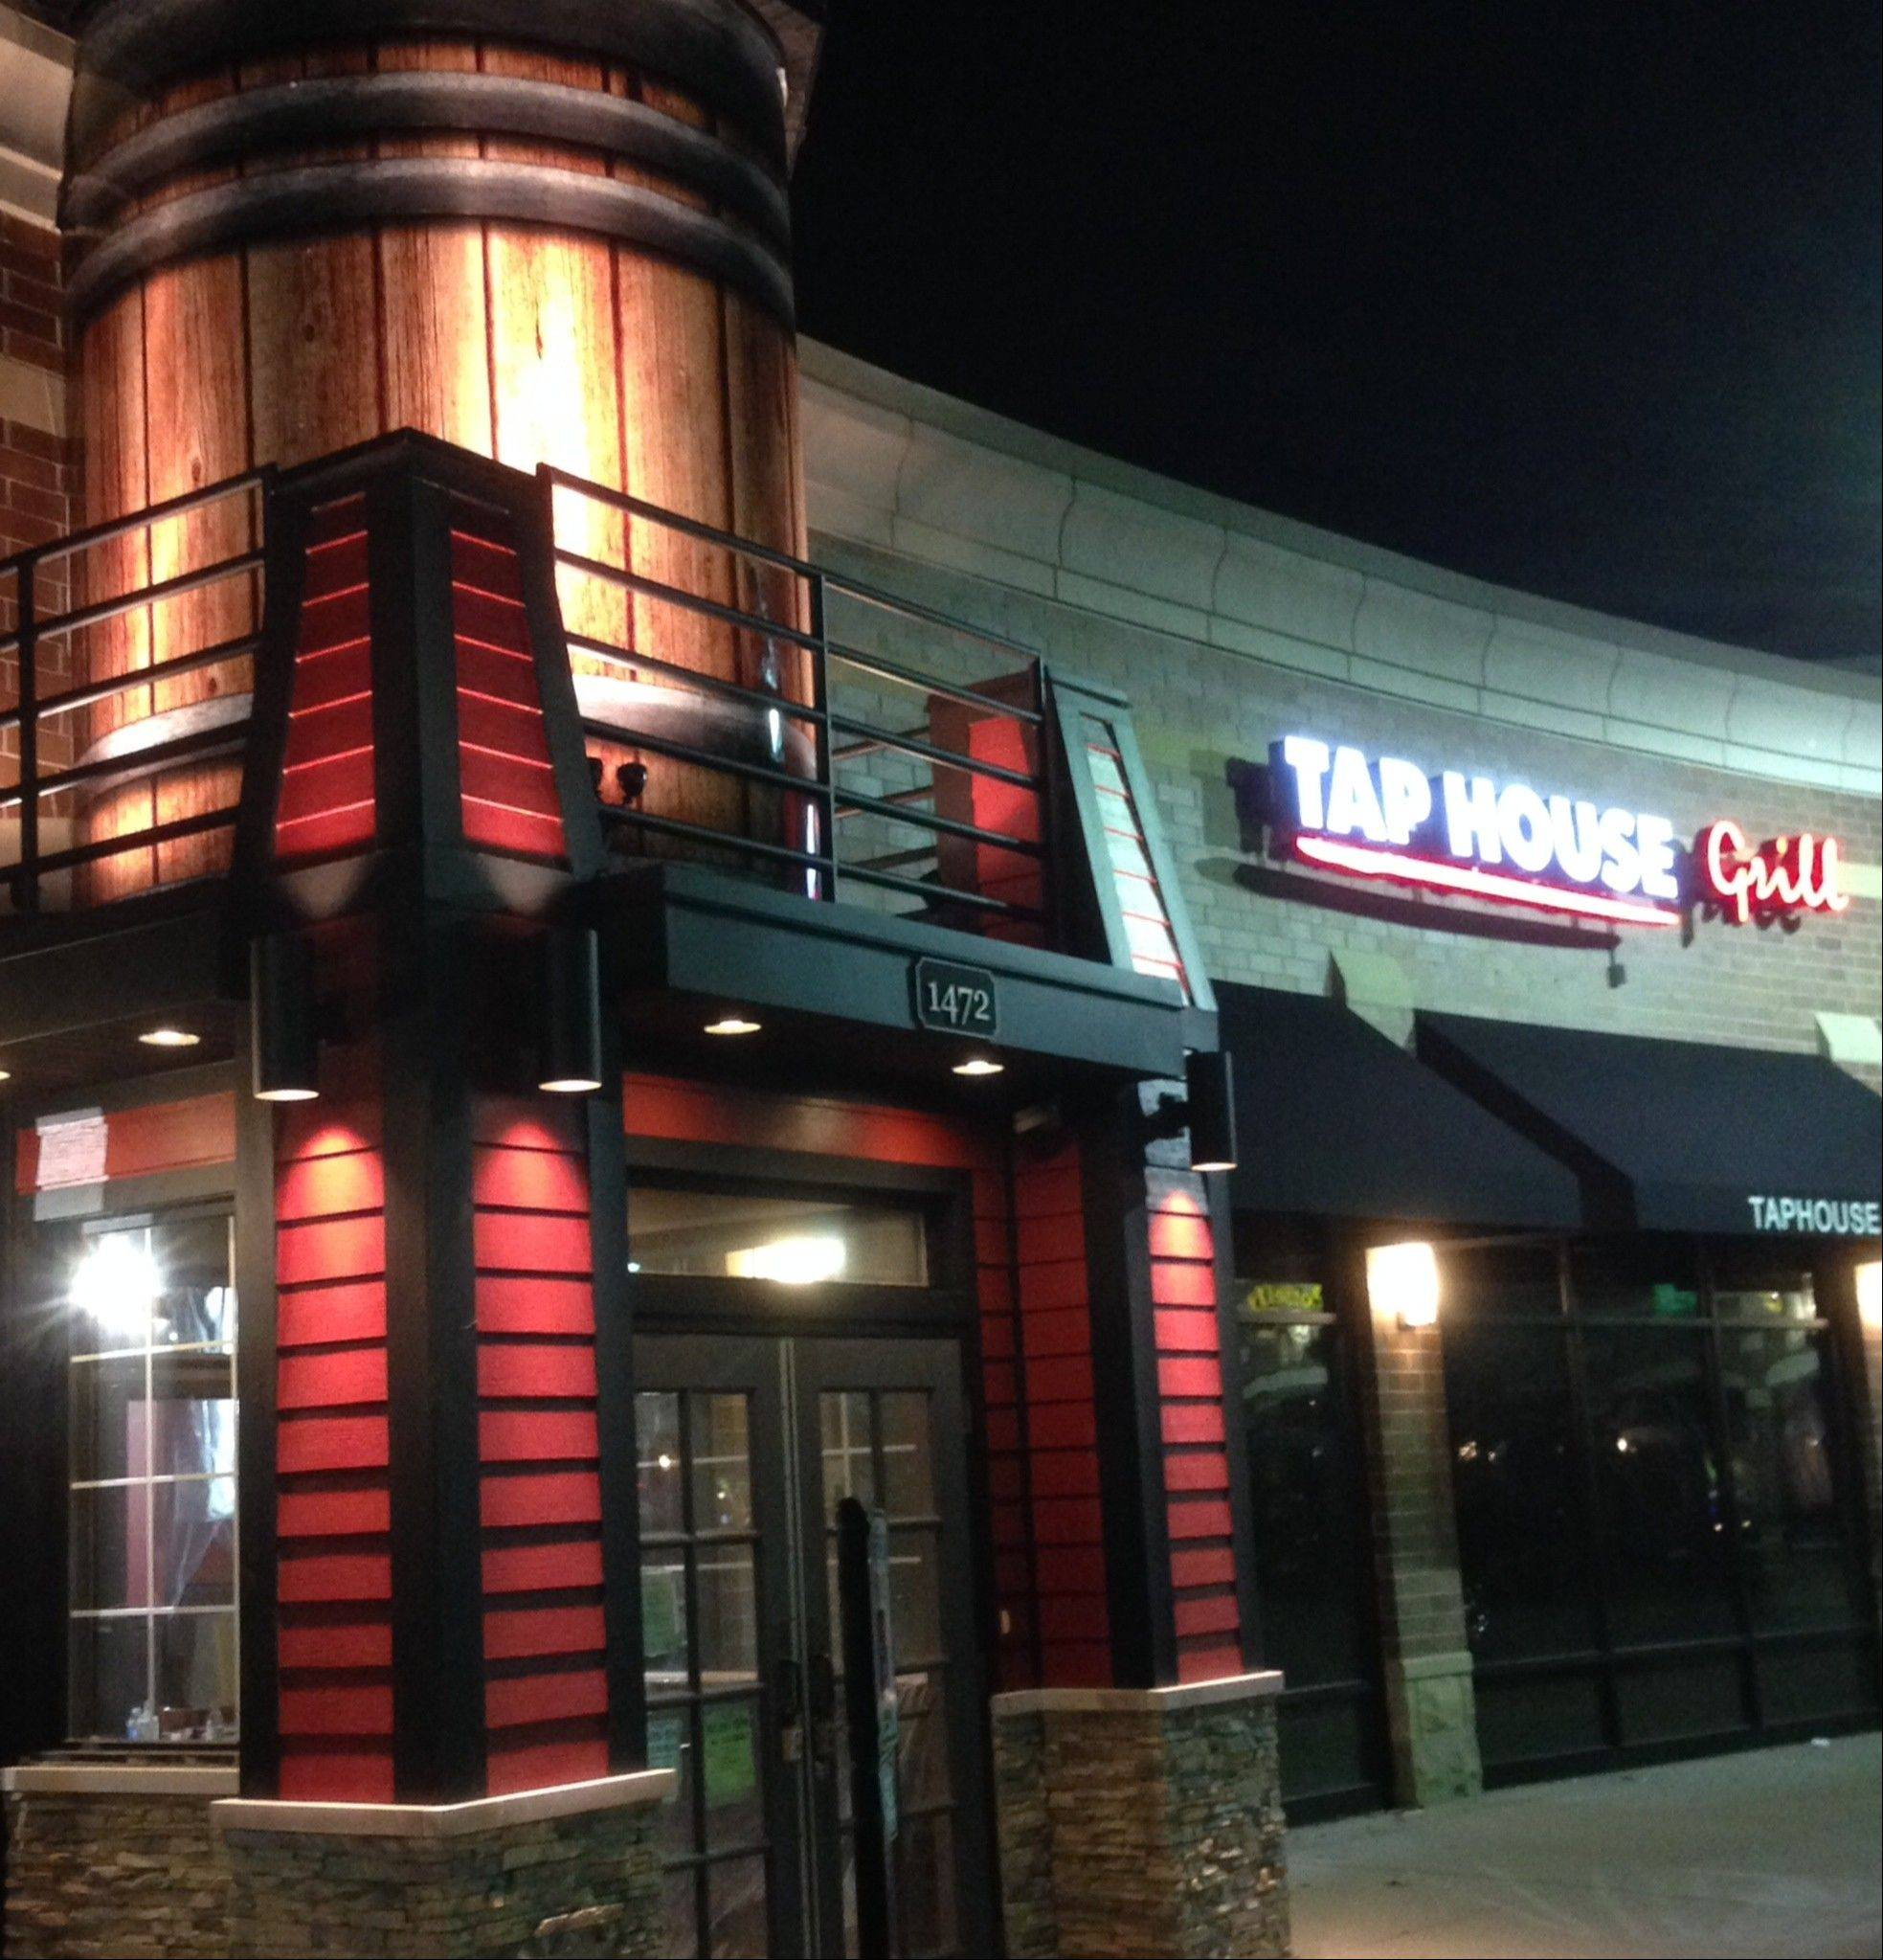 The Tap House Grill is now open at Metropolitan Square in Des Plaines.